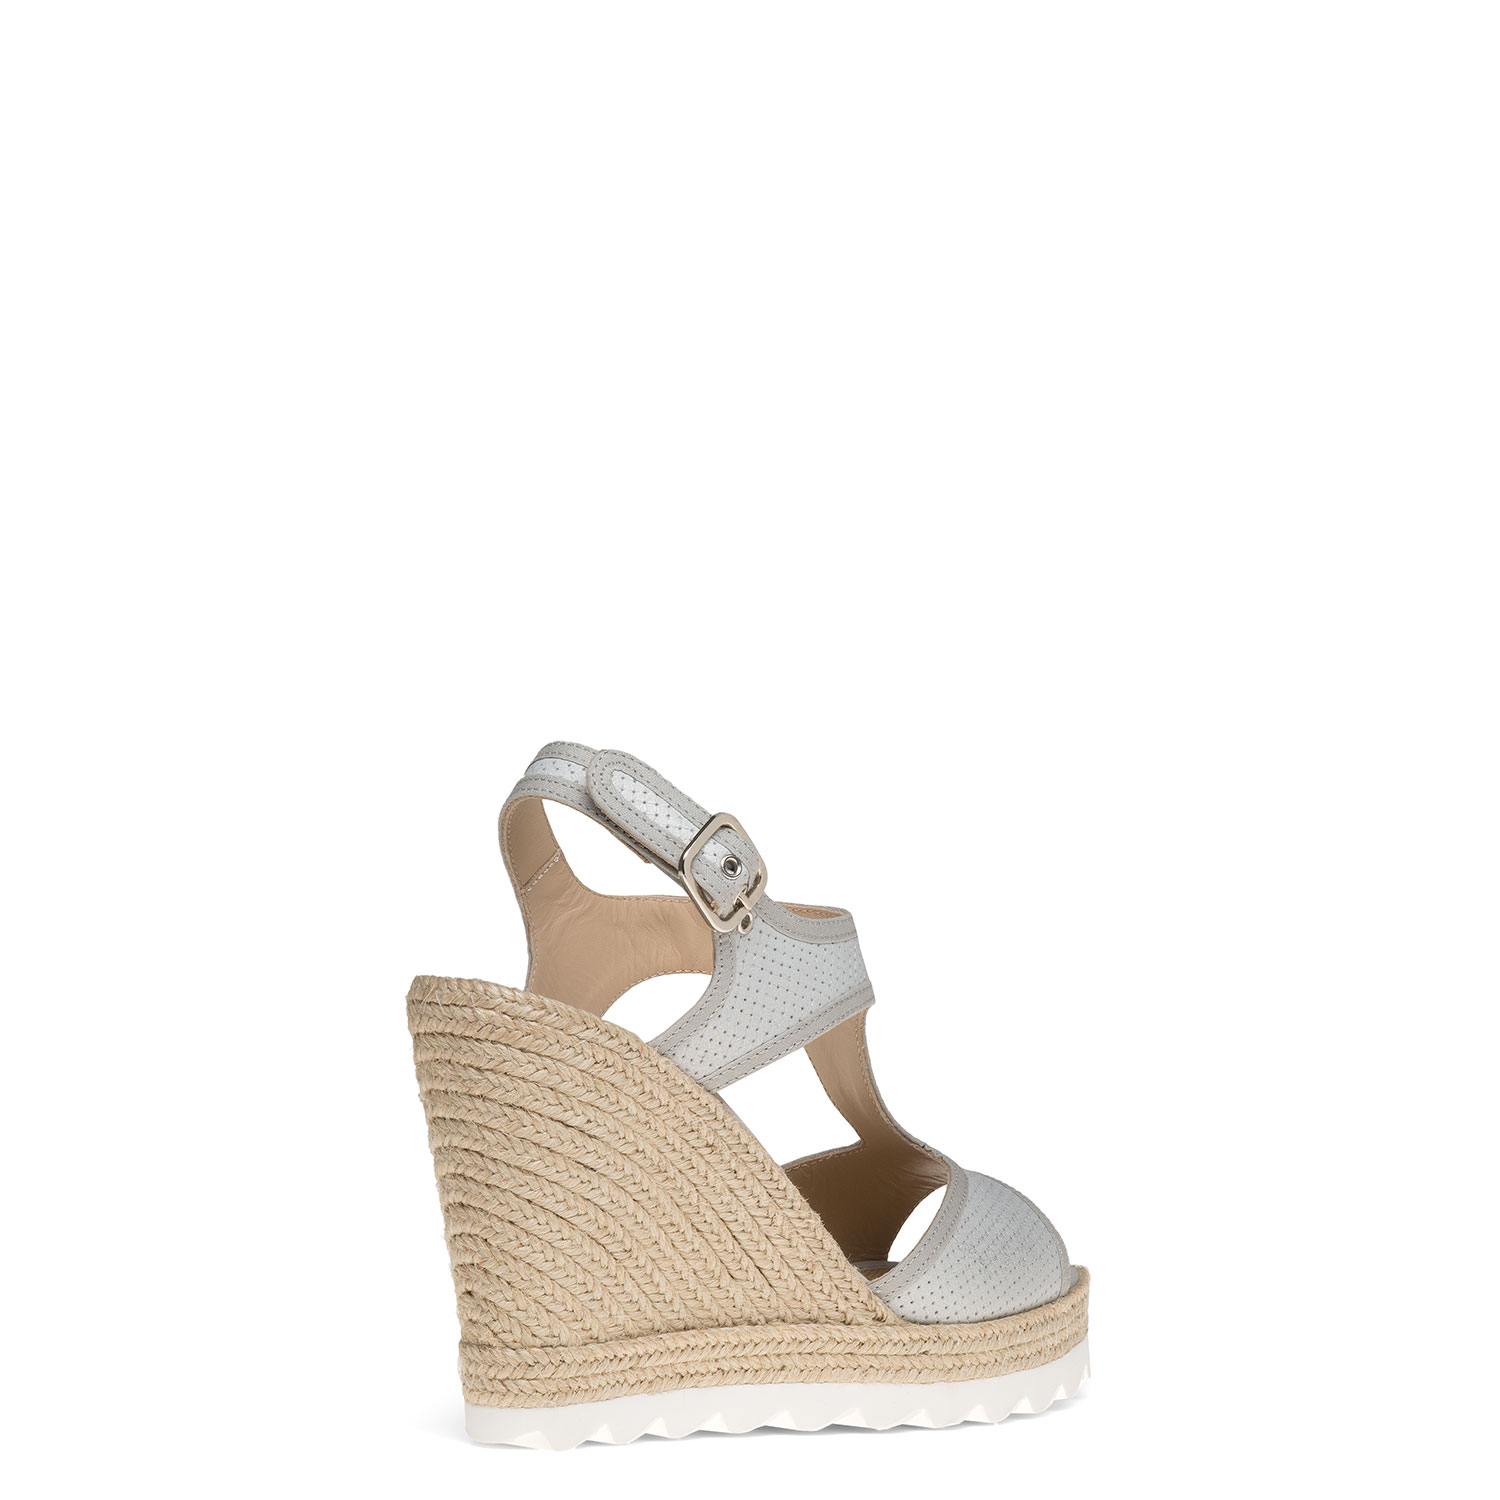 Women's sandals CARLO PAZOLINI CT-X3280-8